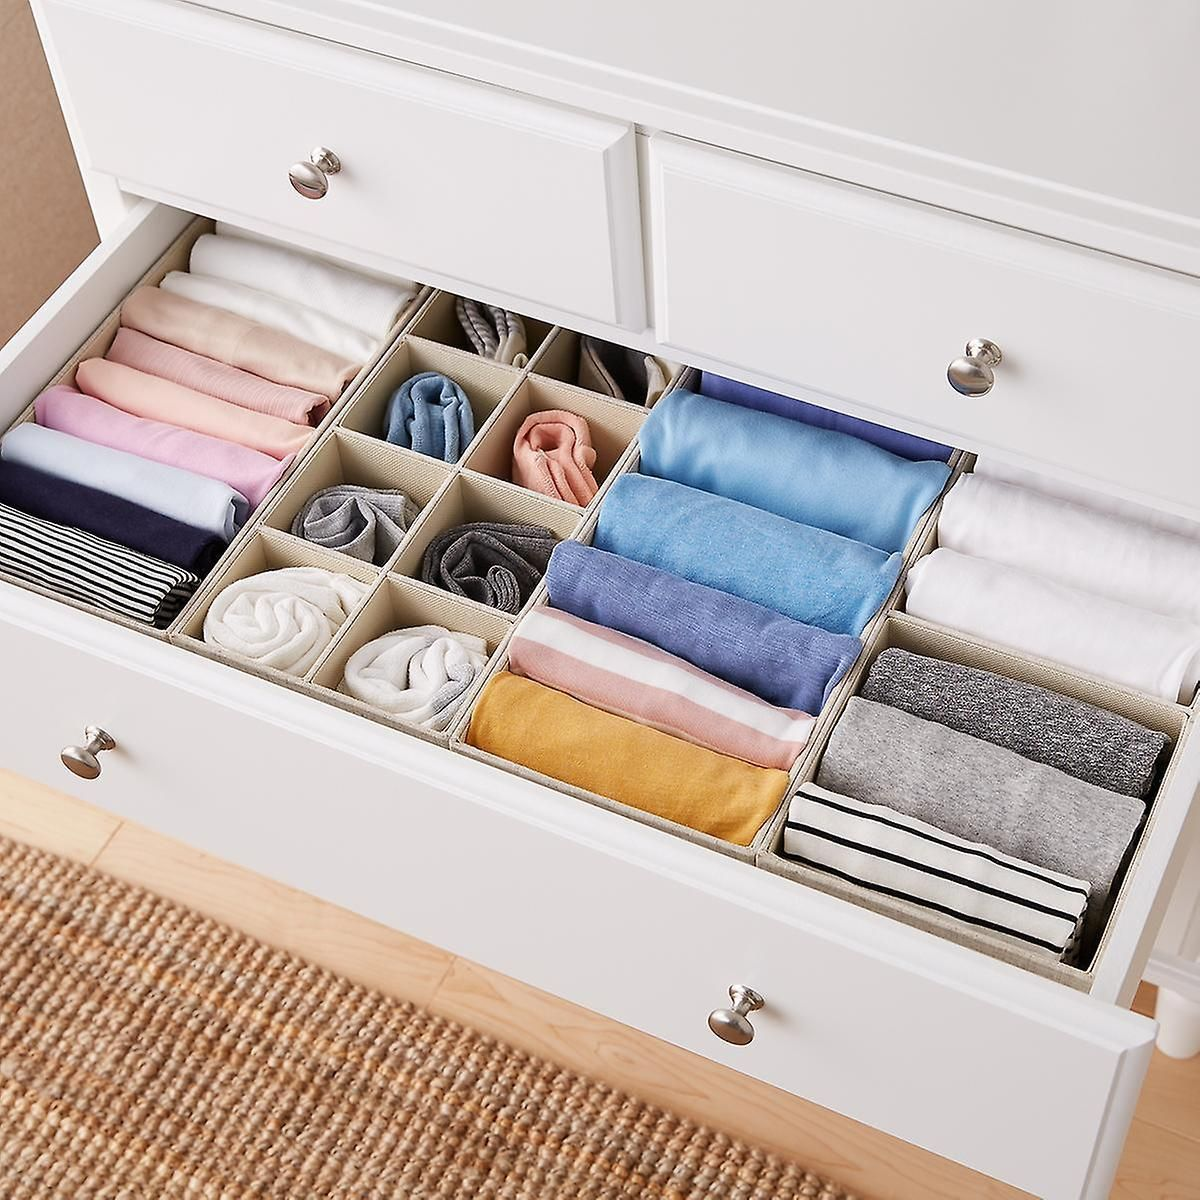 28 X 14 Linen Drawer Organization Starter Kit Clothes Drawer Organization Dresser Drawer Organization Closet Organizer With Drawers